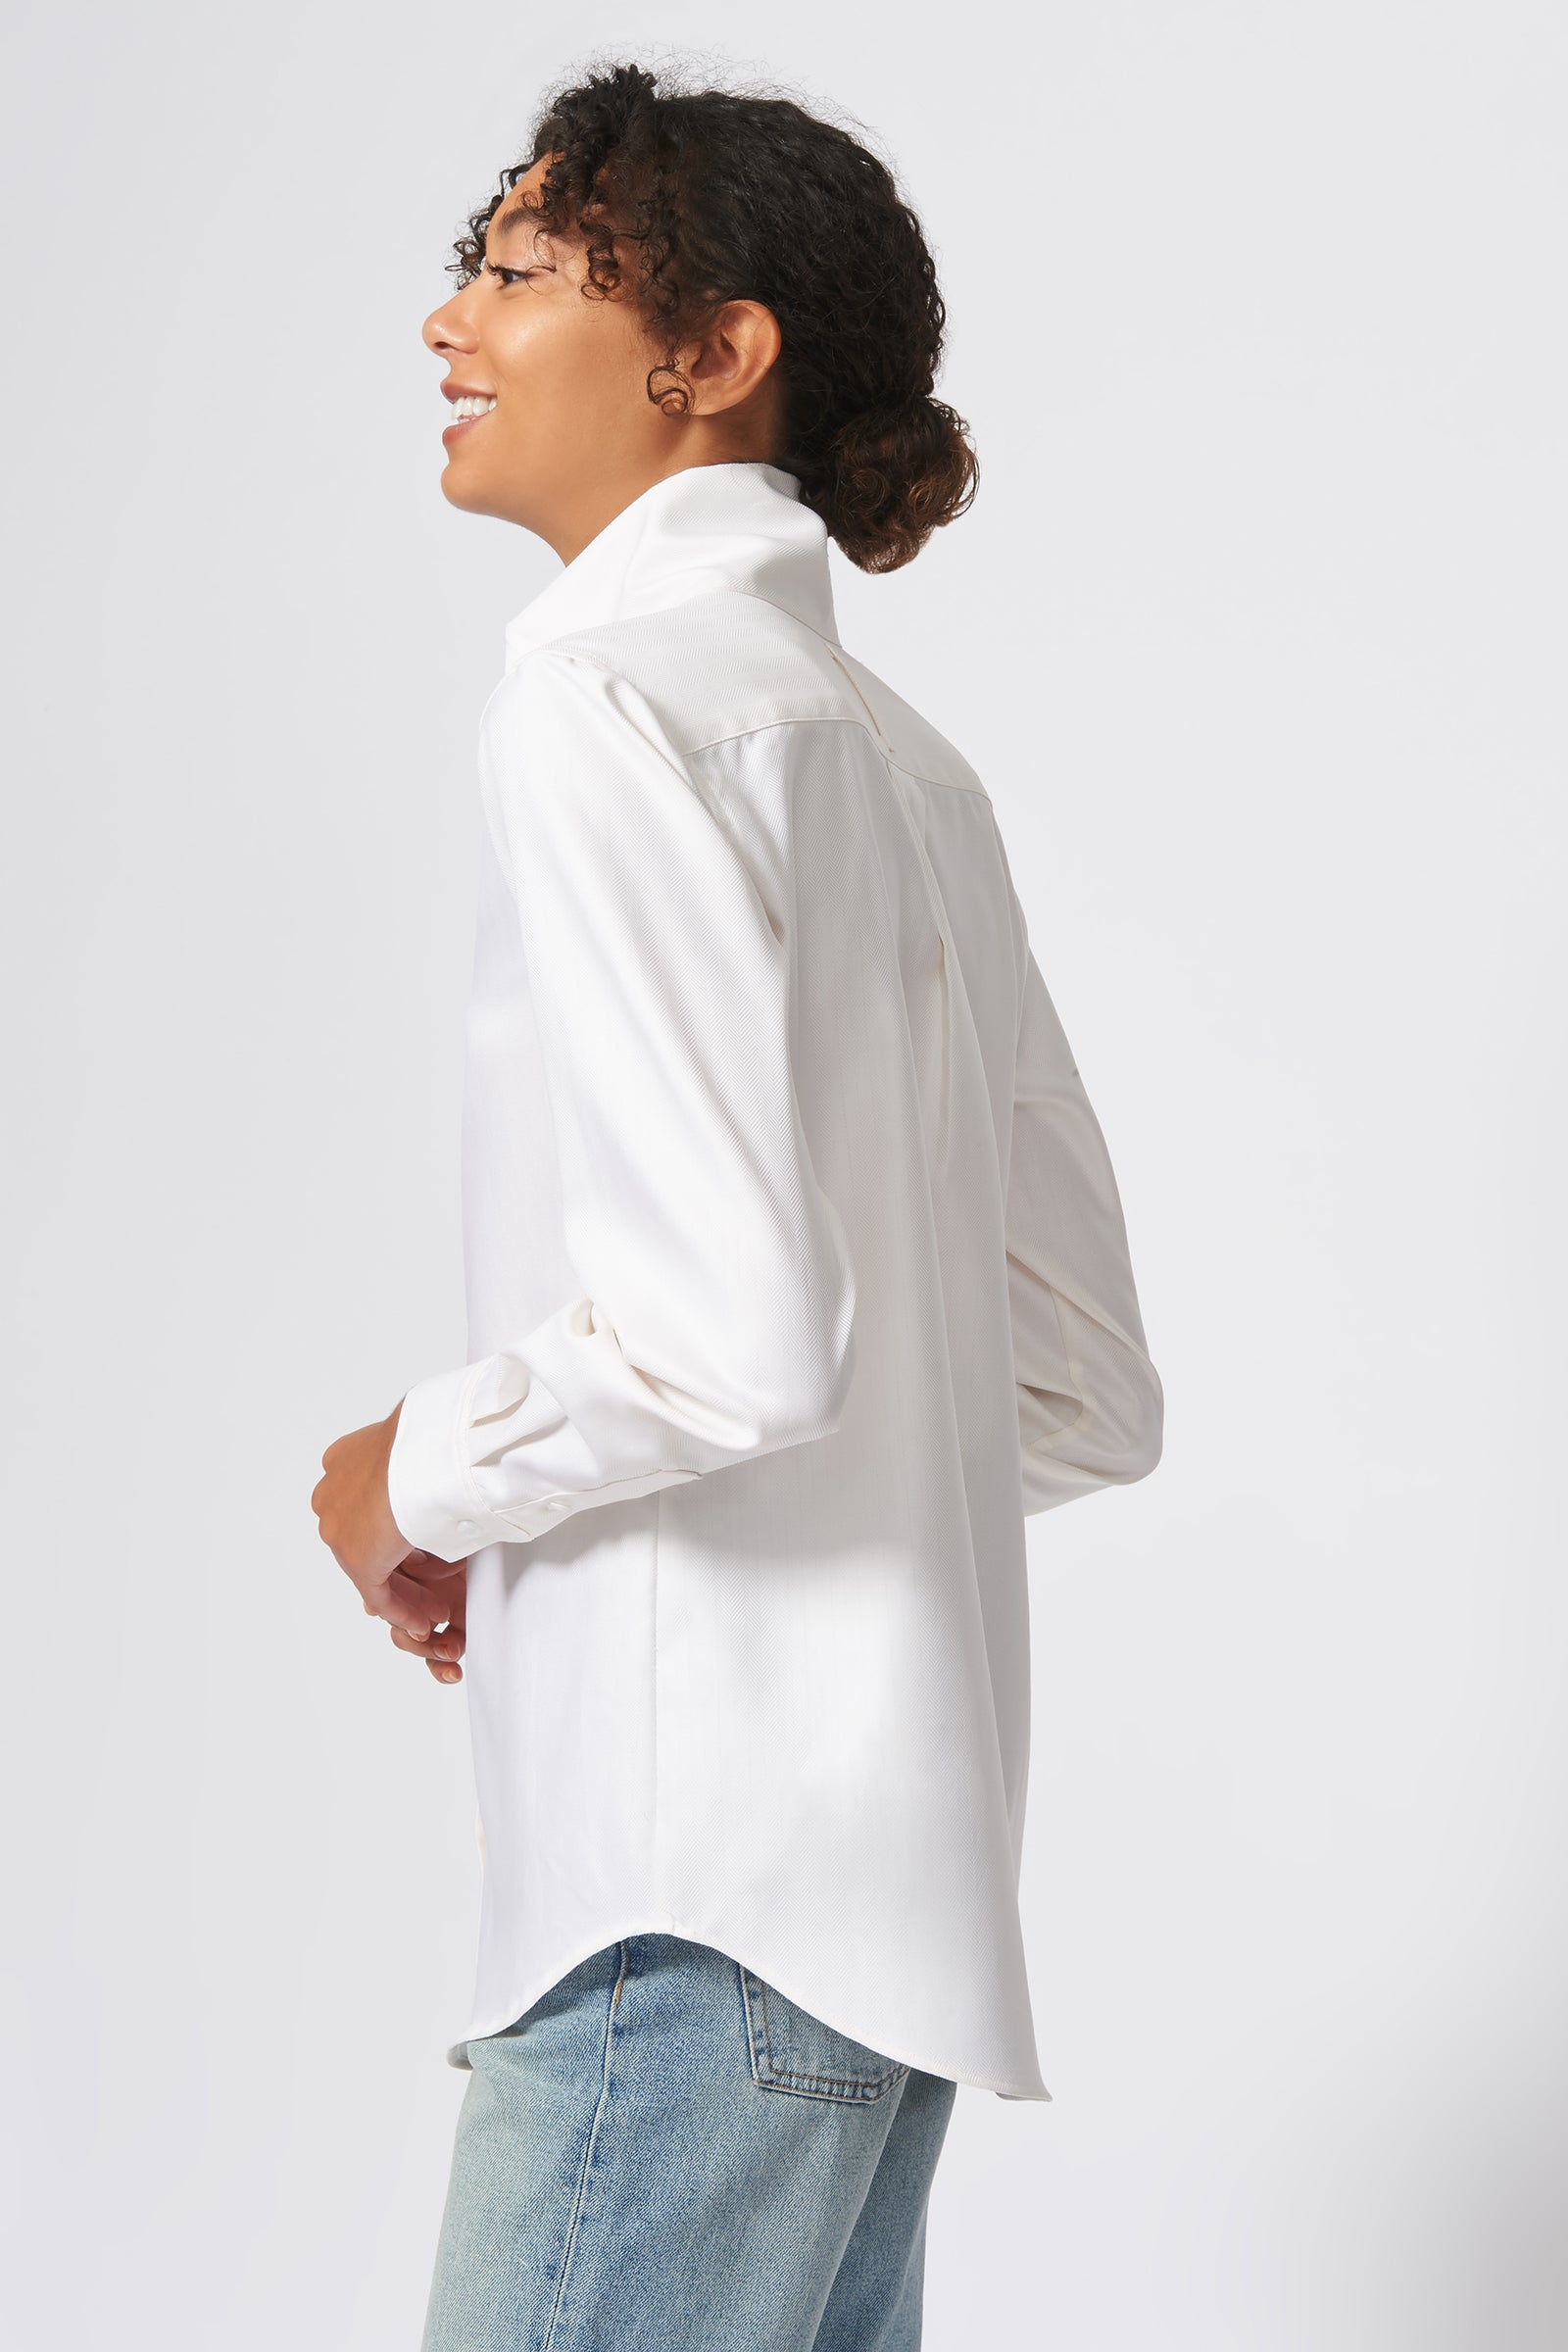 Kal Rieman Ginna Box Pleat Shirt in Ivory Fine Herringbone on Model Side Back View